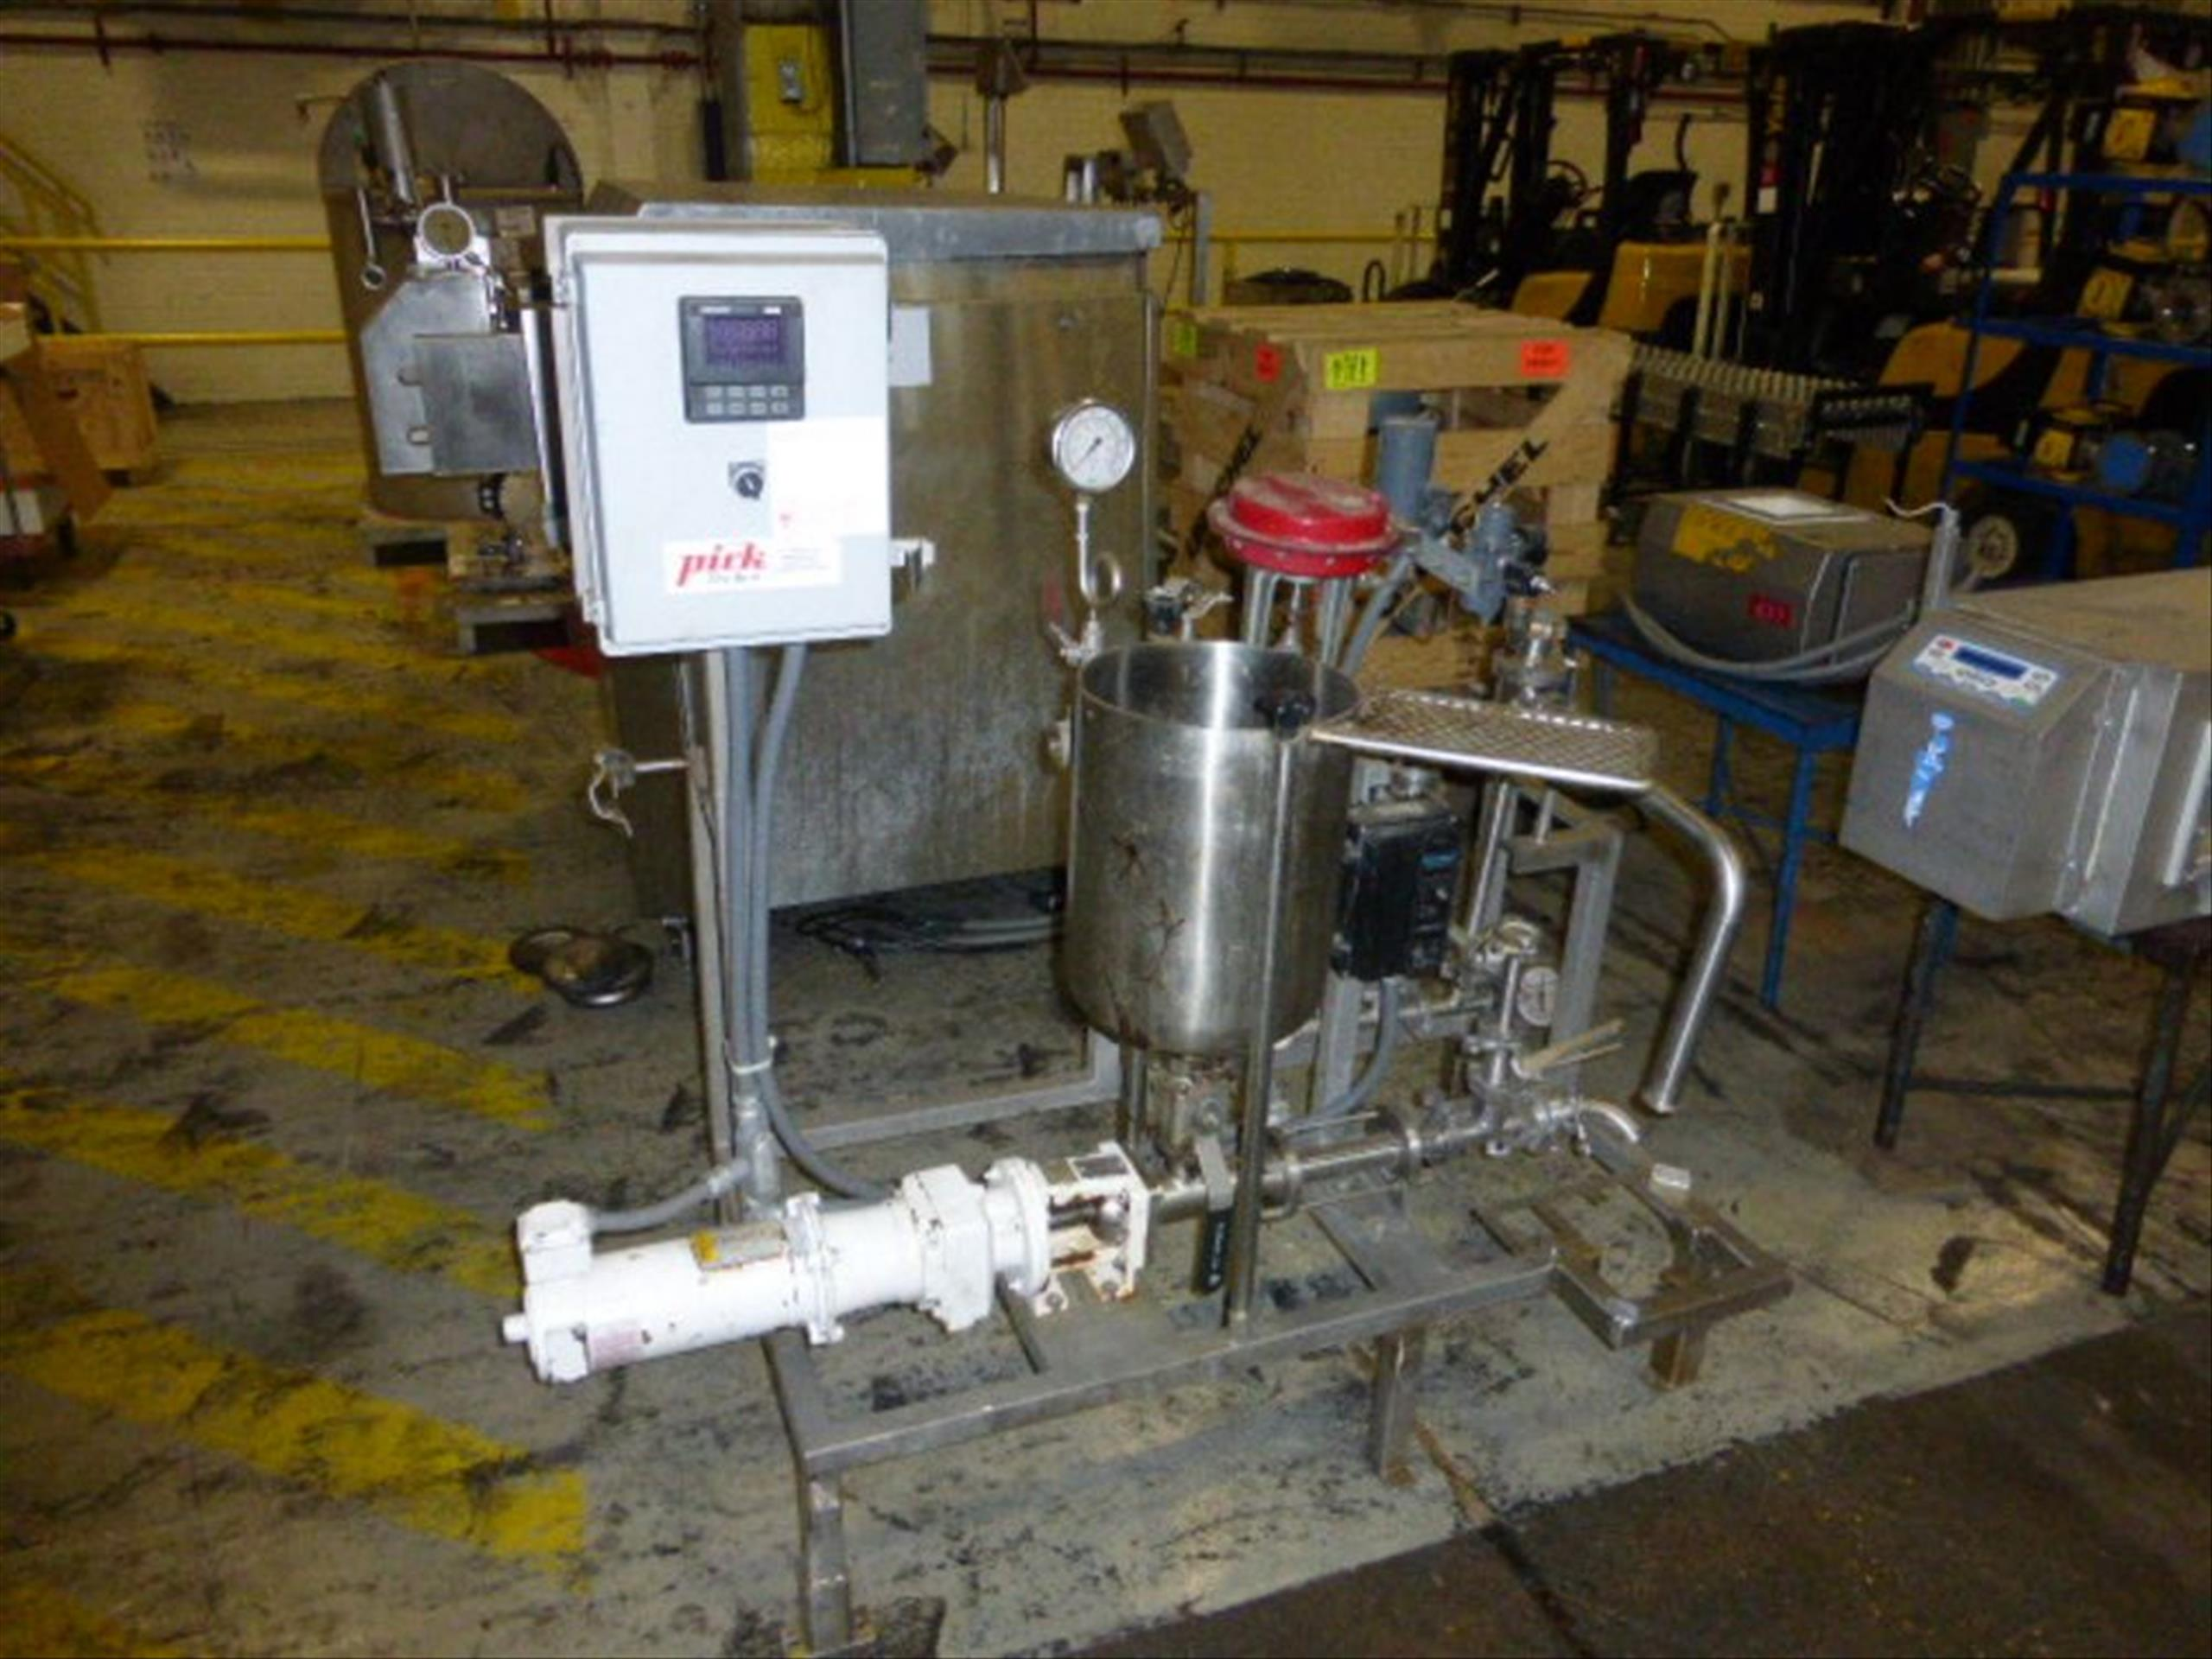 Pick Heating Process Unit with Moyno EB2A SSE3 #7427602 with 0.5 HP Stainless Steel Tank, 11.5 in - Image 3 of 3